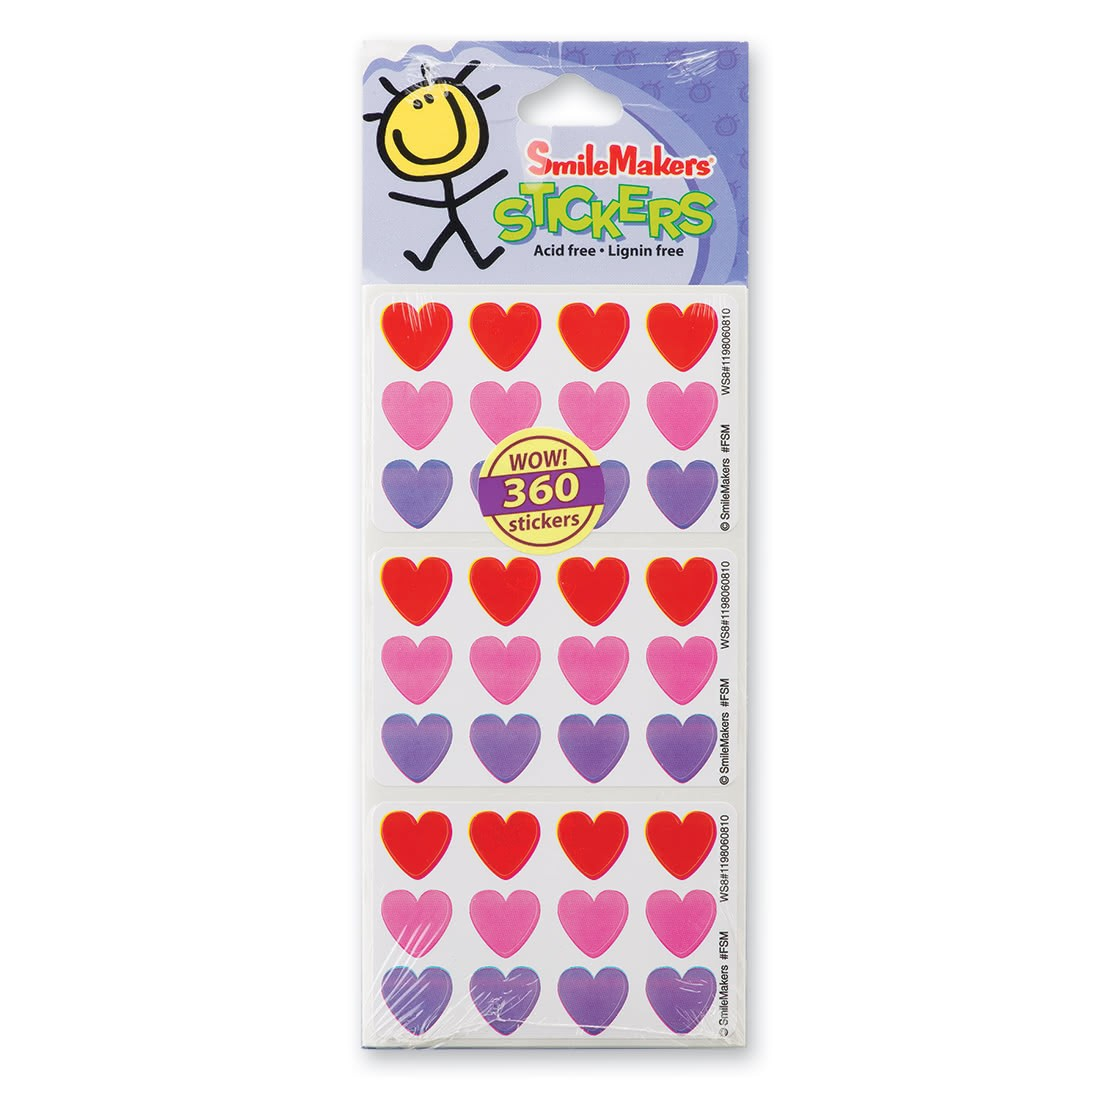 Fun Shapes Hearts Stickers [image]